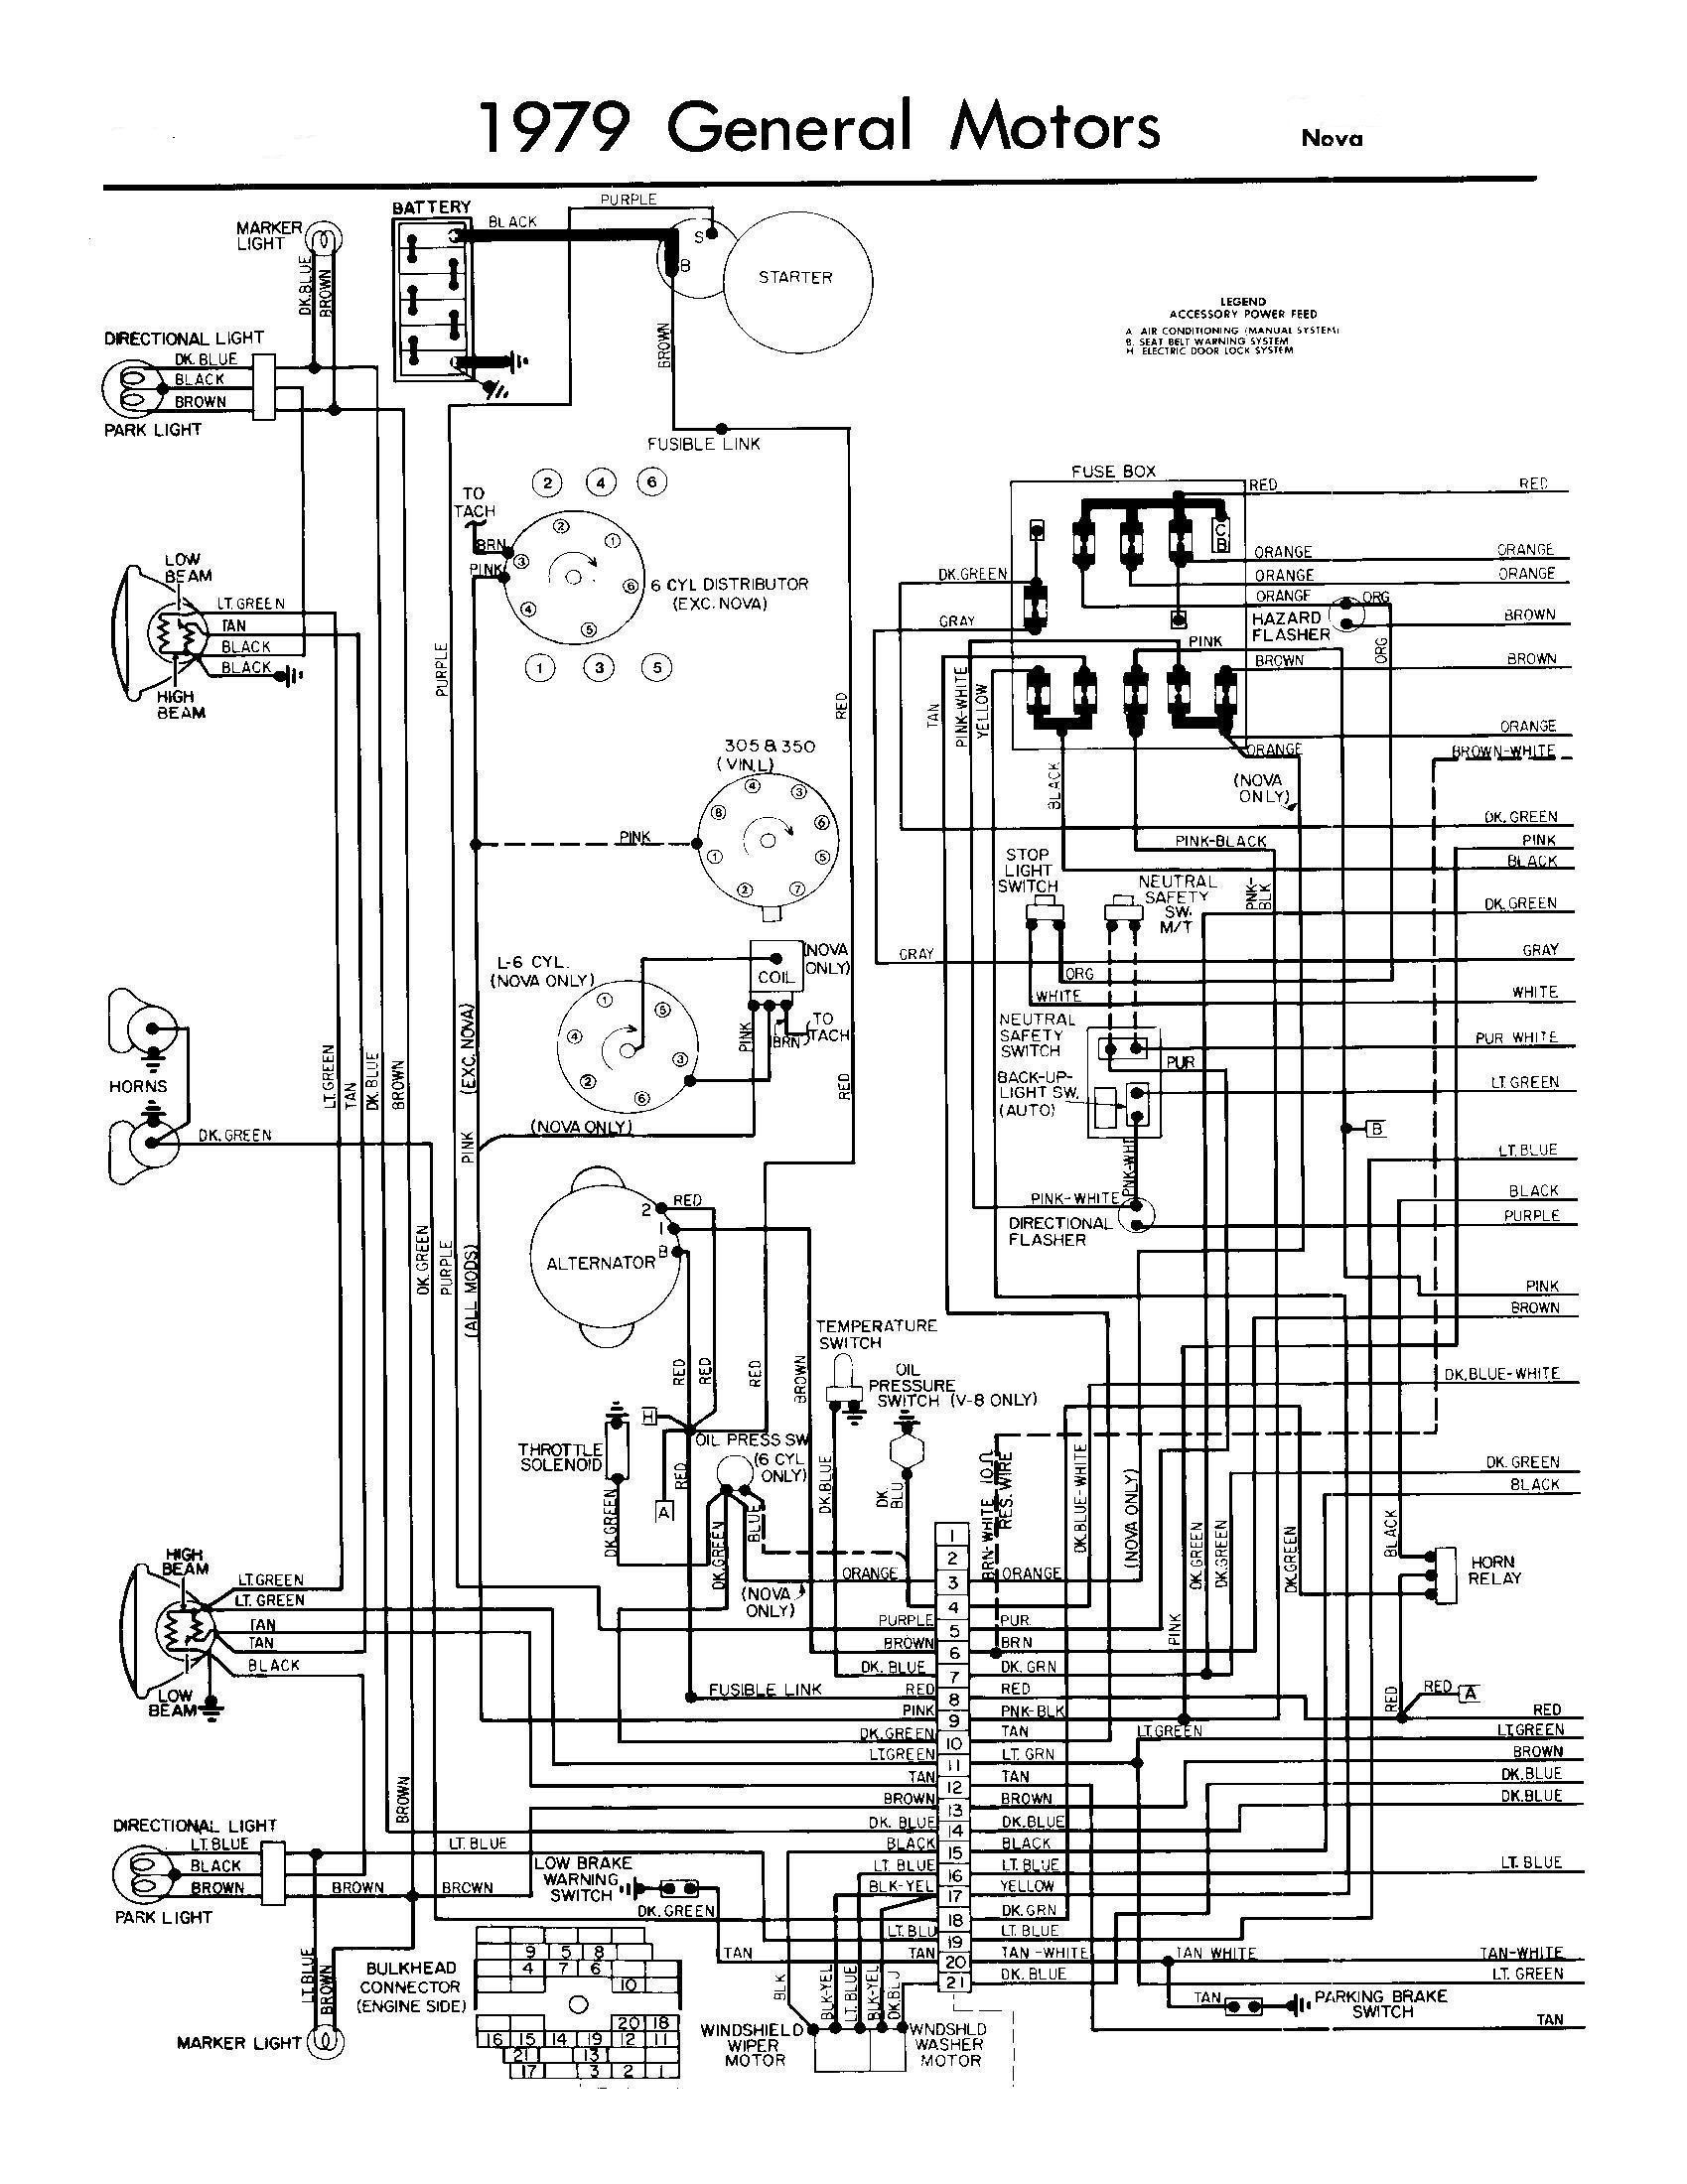 1989 chevy fuse box diagram understand i have one wiring diagrams mycorvette cruise control vacuum diagram on 90 camaro fuse box diagram 1989 chevy fuse box diagram understand i have one source 1989 chevrolet silverado